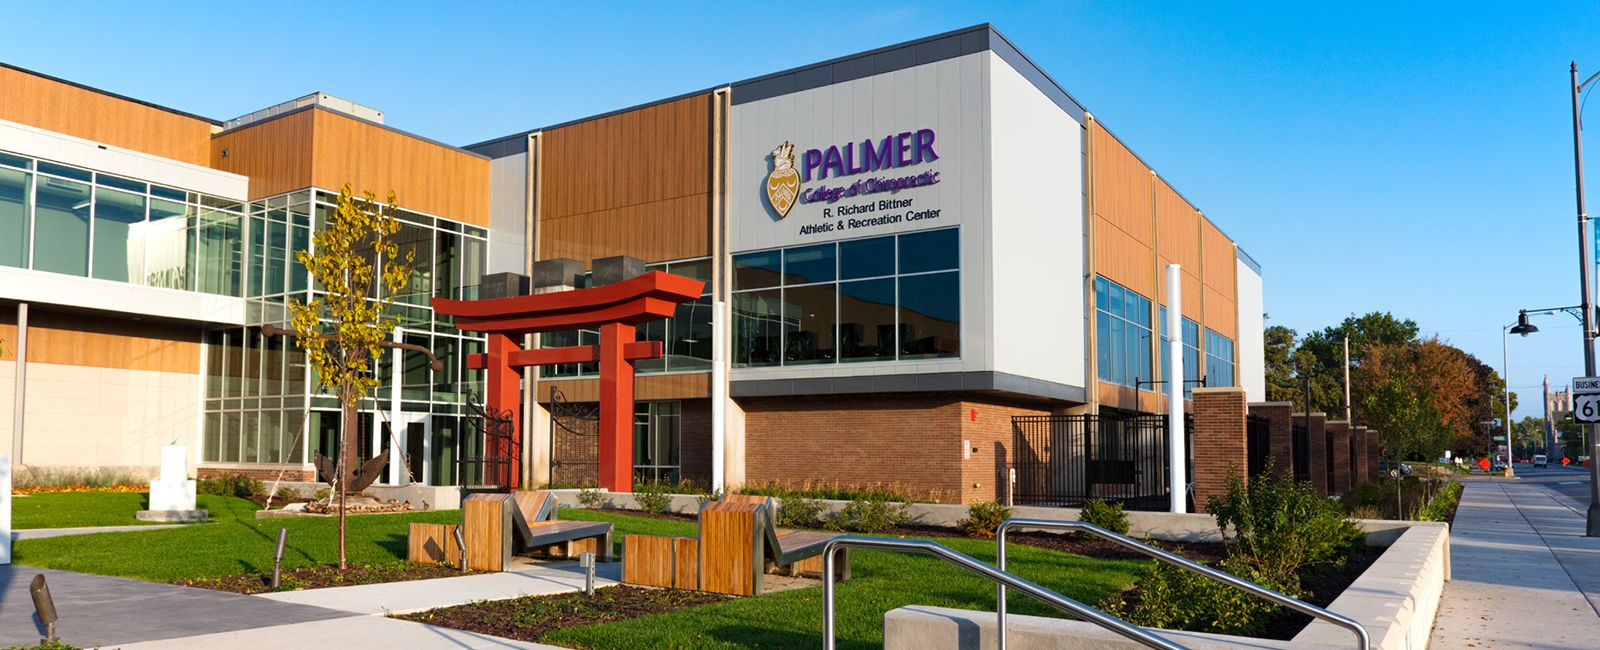 Project - Palmer College - R. Richard Bittner Athletic and Recreation Center - 4